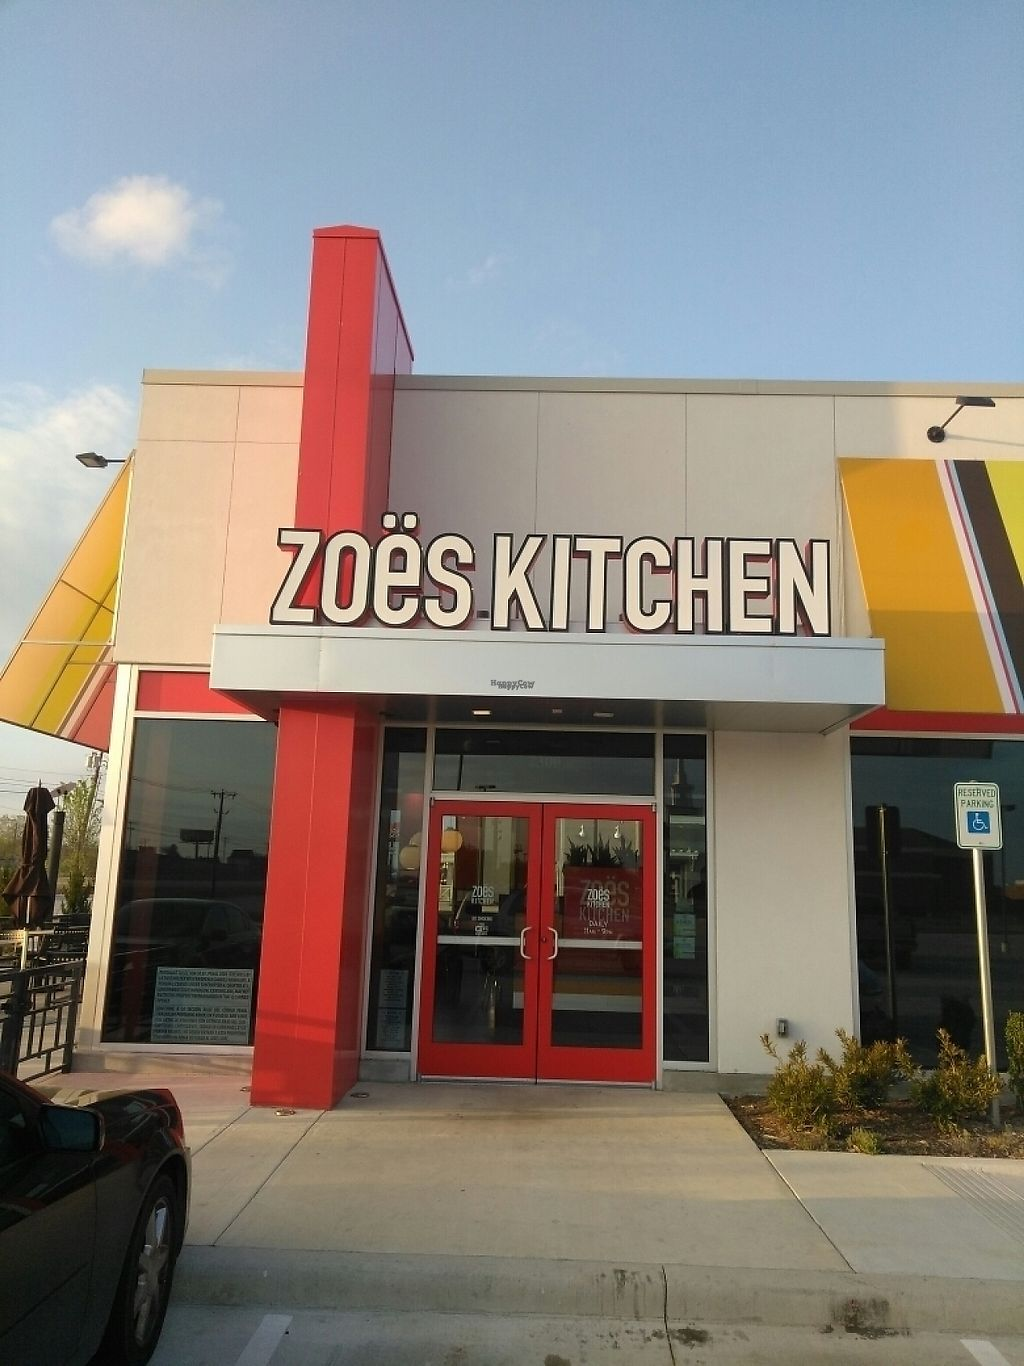 """Photo of Zoe's Kitchen  by <a href=""""/members/profile/Tonydetra"""">Tonydetra</a> <br/>Zoe's kitchen <br/> March 24, 2017  - <a href='/contact/abuse/image/78674/240191'>Report</a>"""